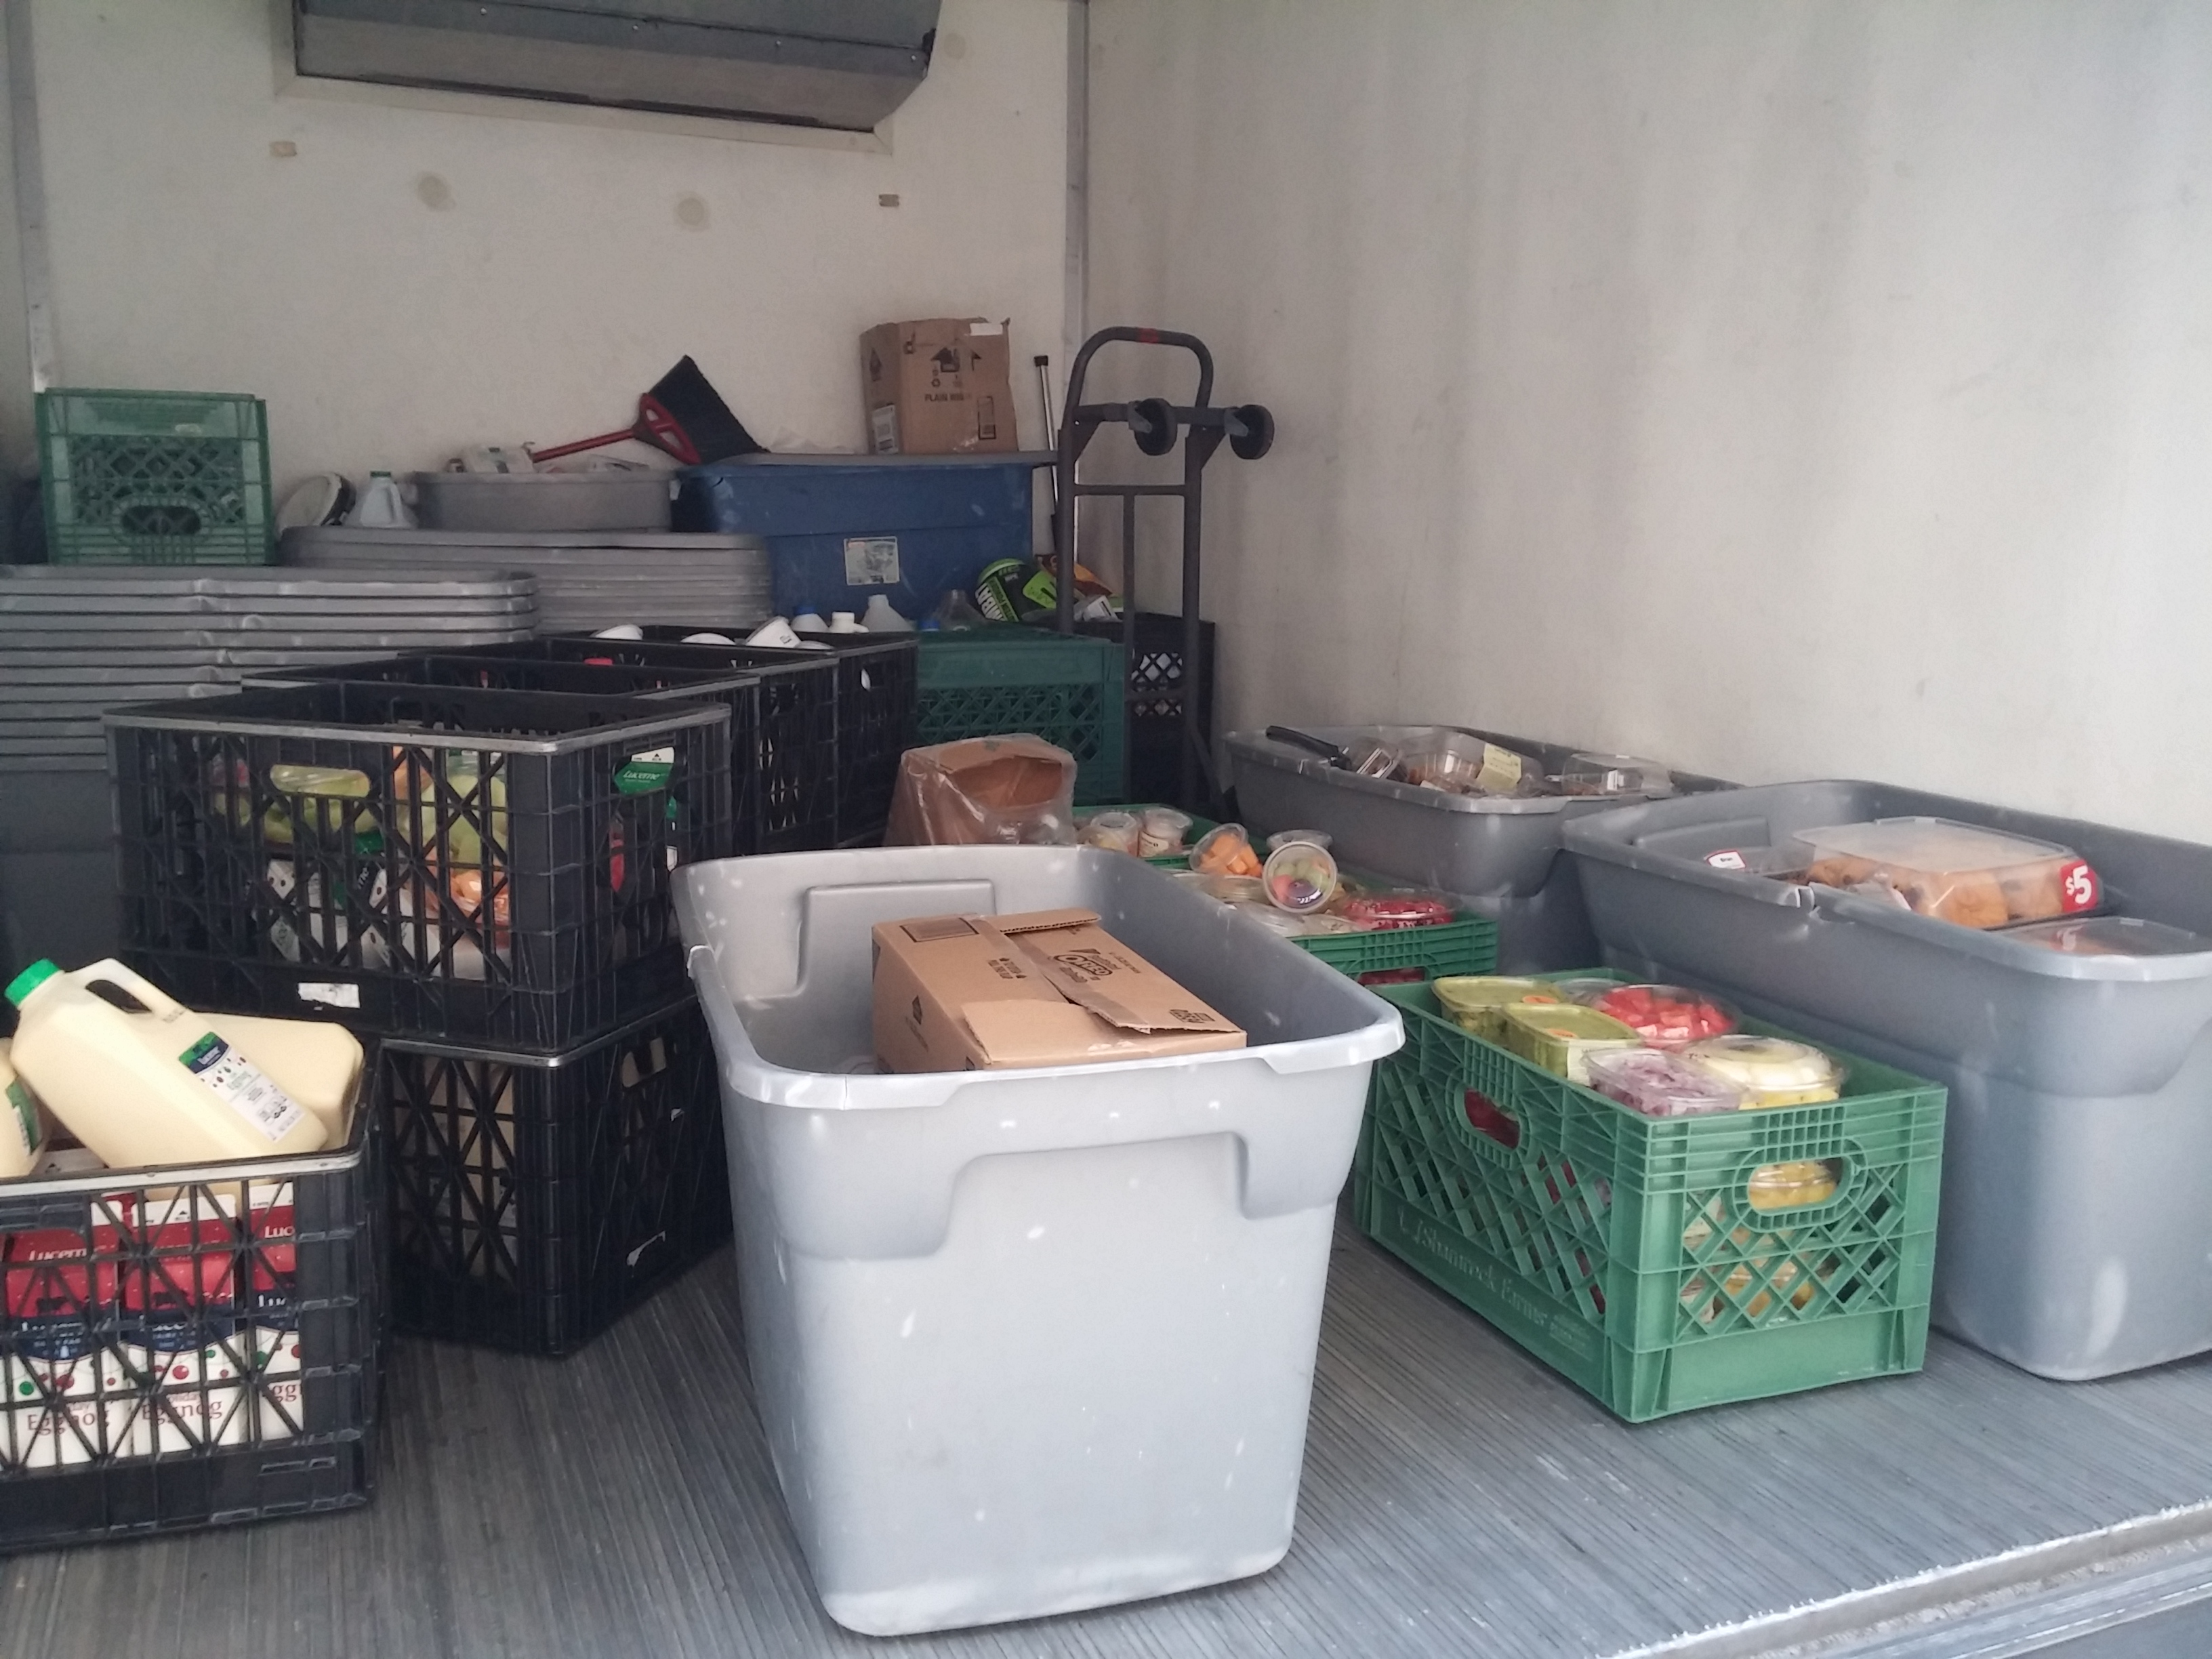 waste, food, truck, recovery